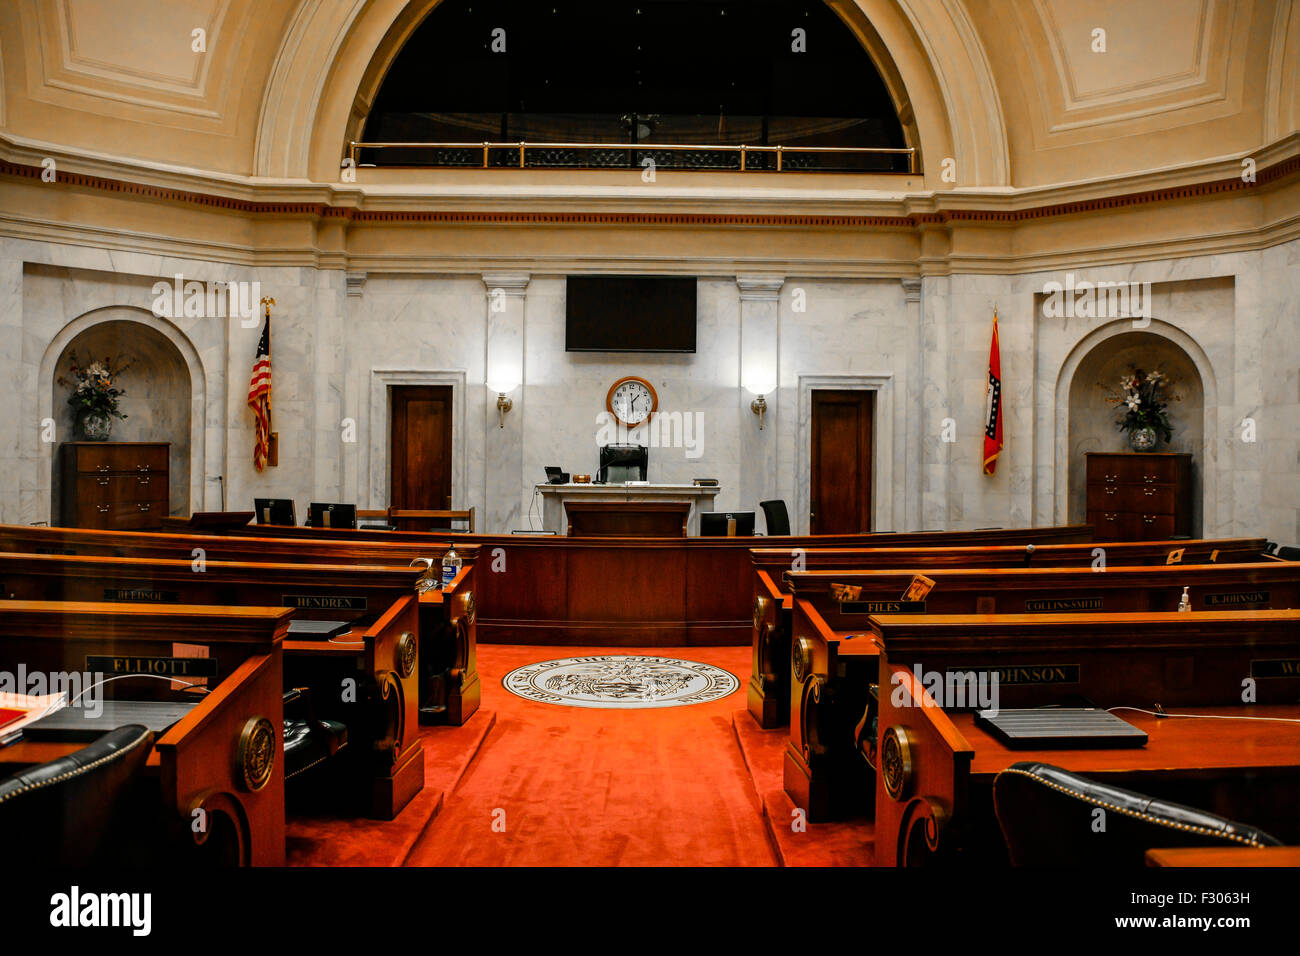 Arkansas State Capitol Building Stock Photos   Arkansas State     The Senate chamber inside the Arkansas State Capitol building in Little  Rock   Stock Image